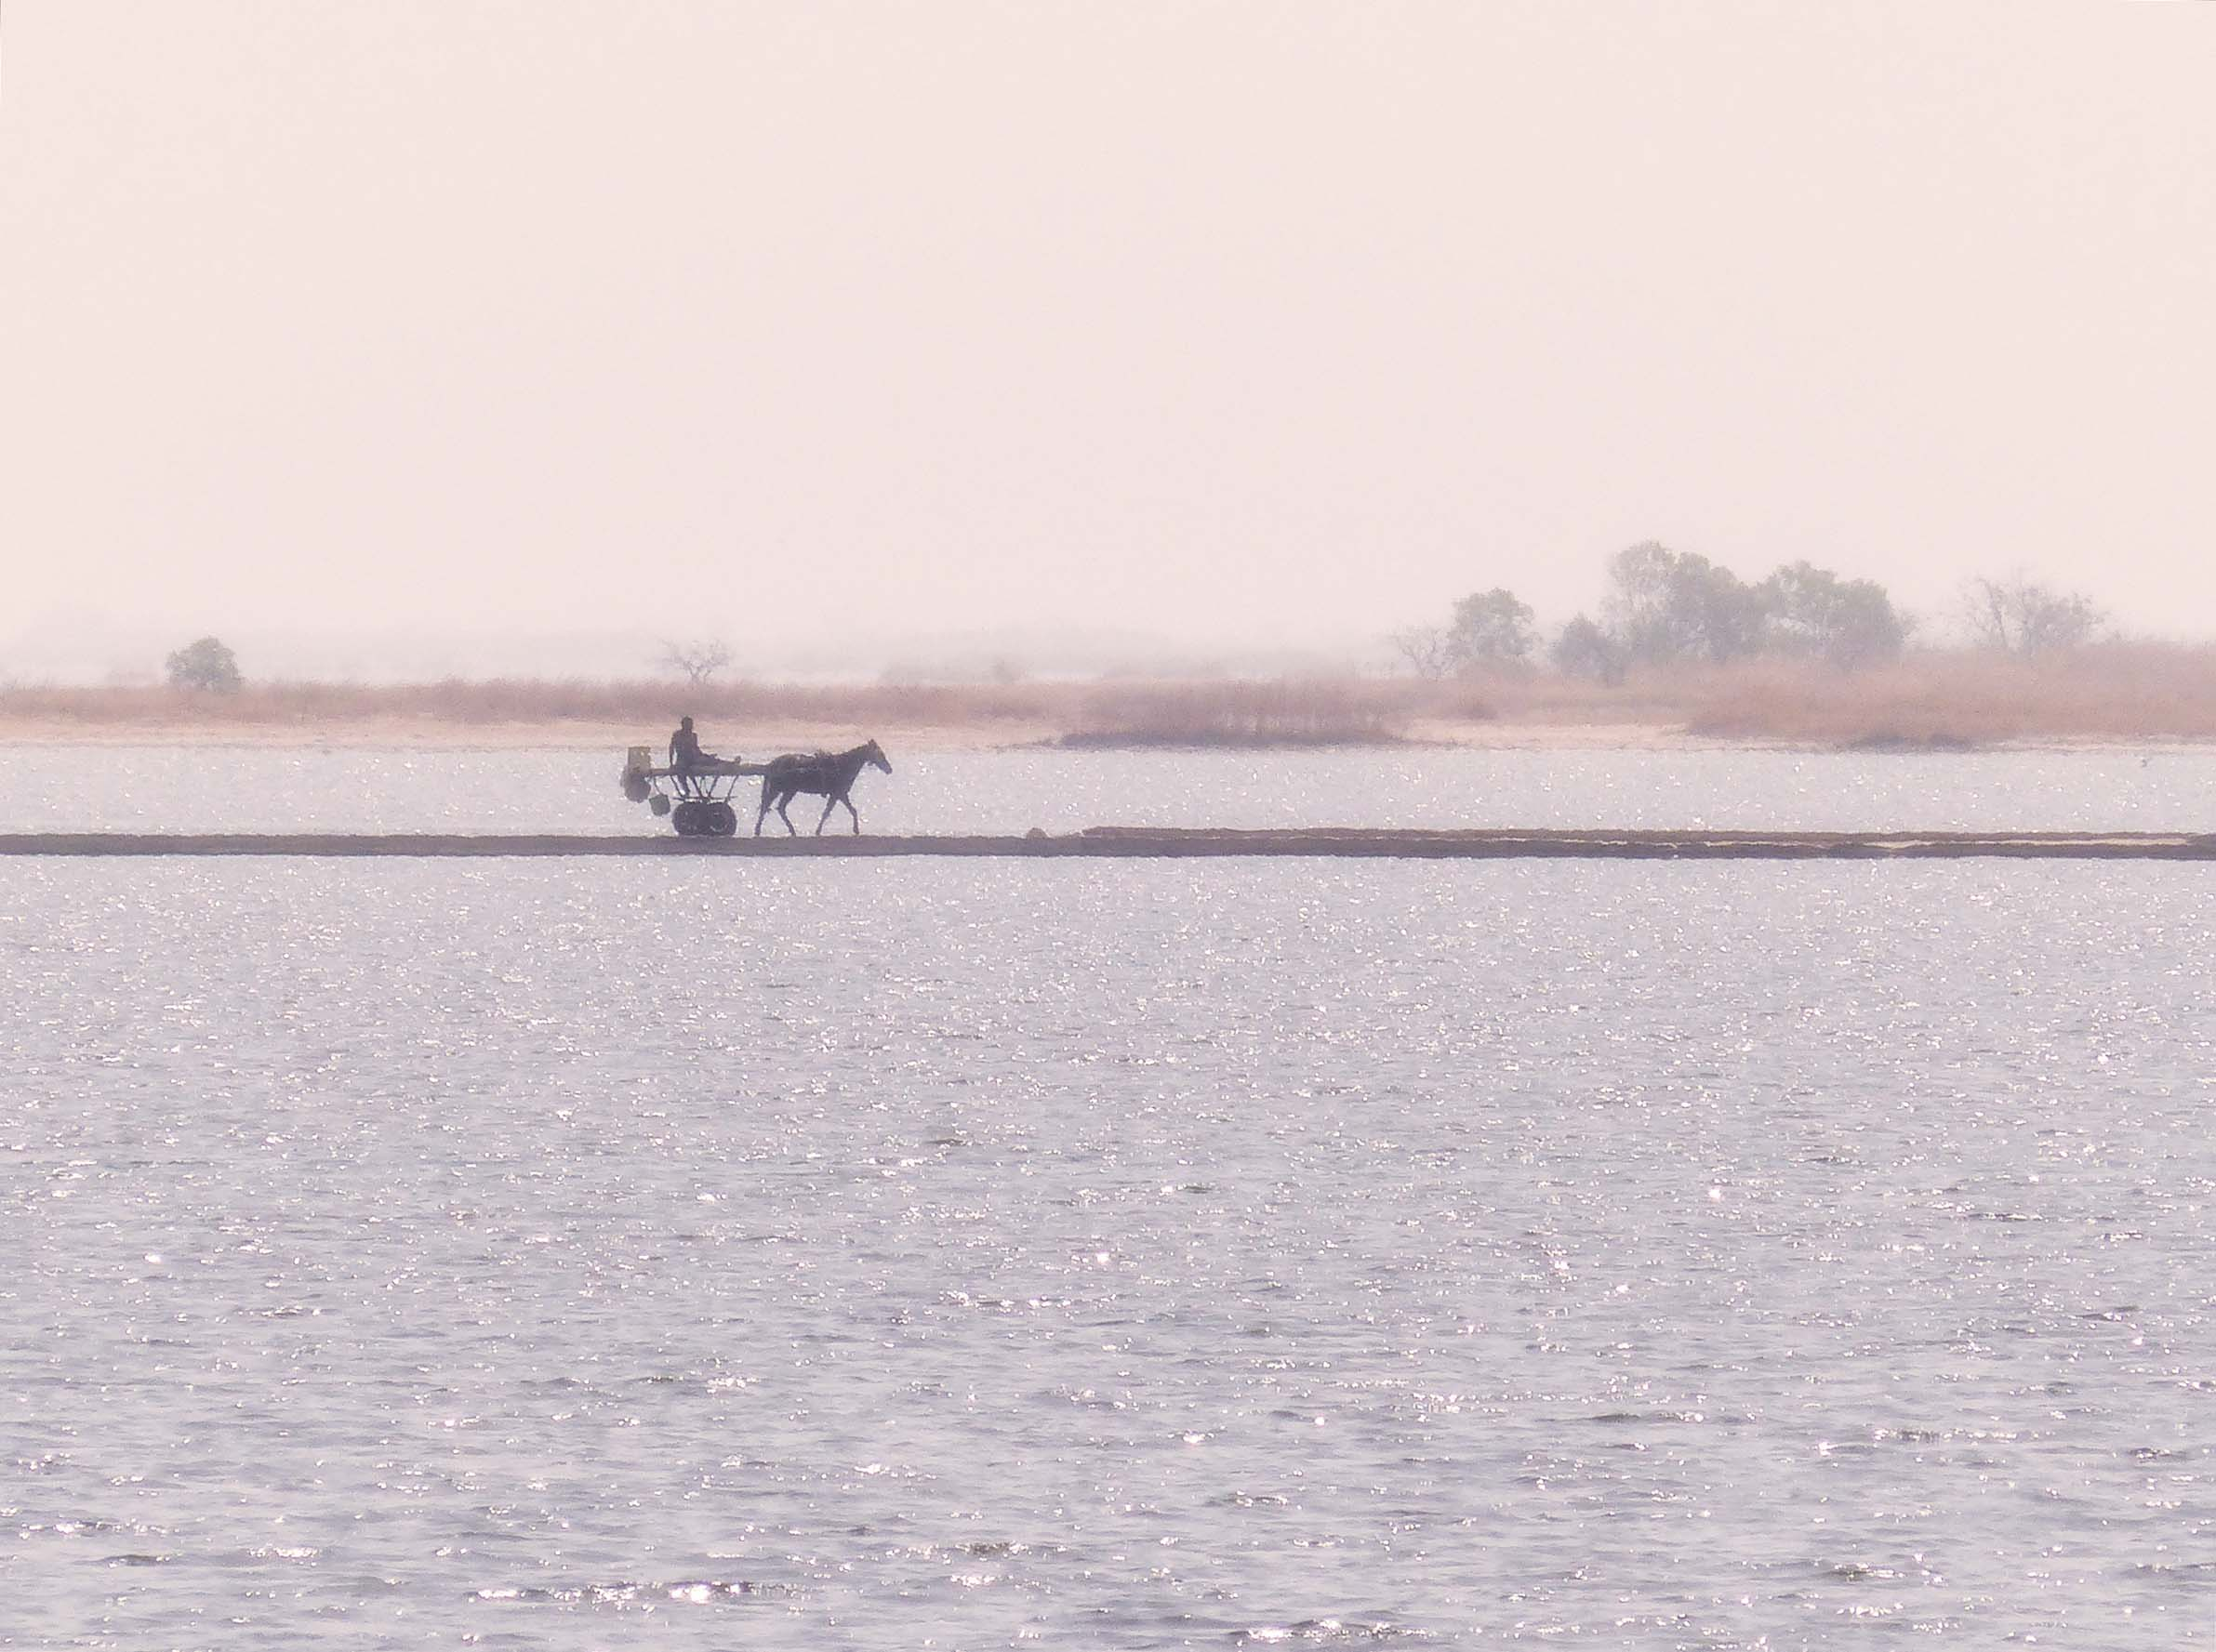 Horse and cart crossing a causeway